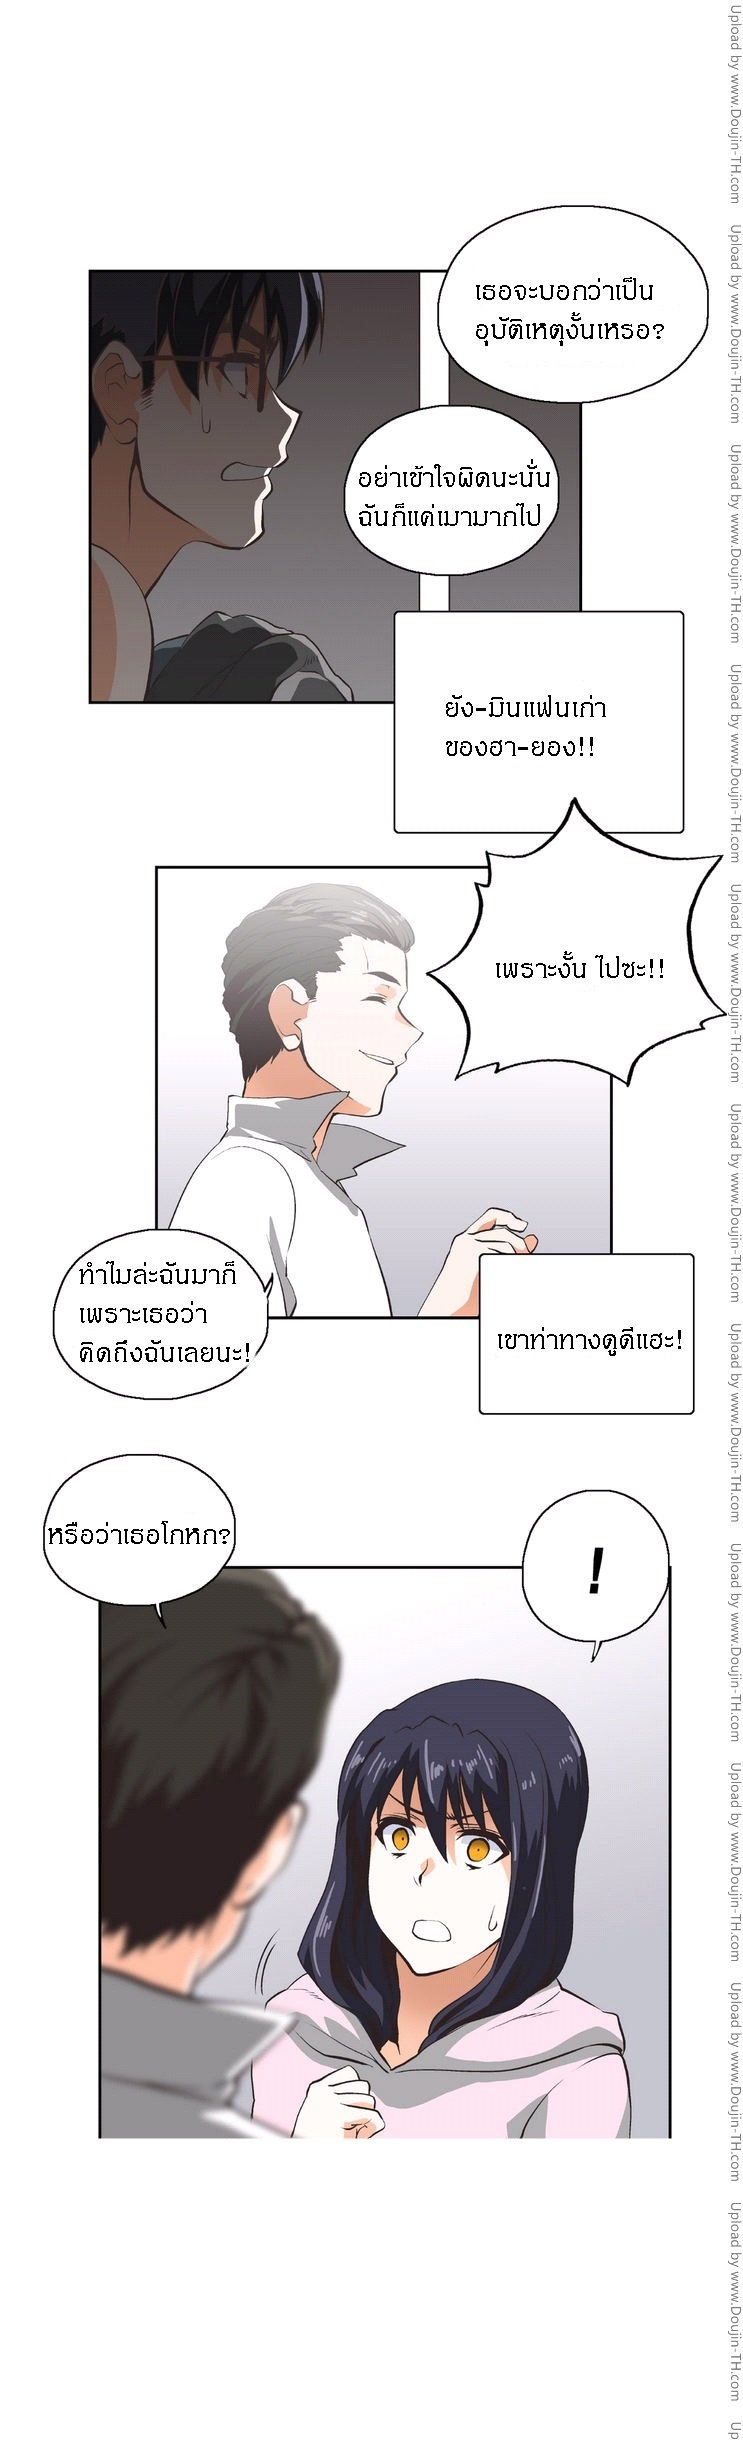 SStudy 10 - What am I ? - หน้า 2